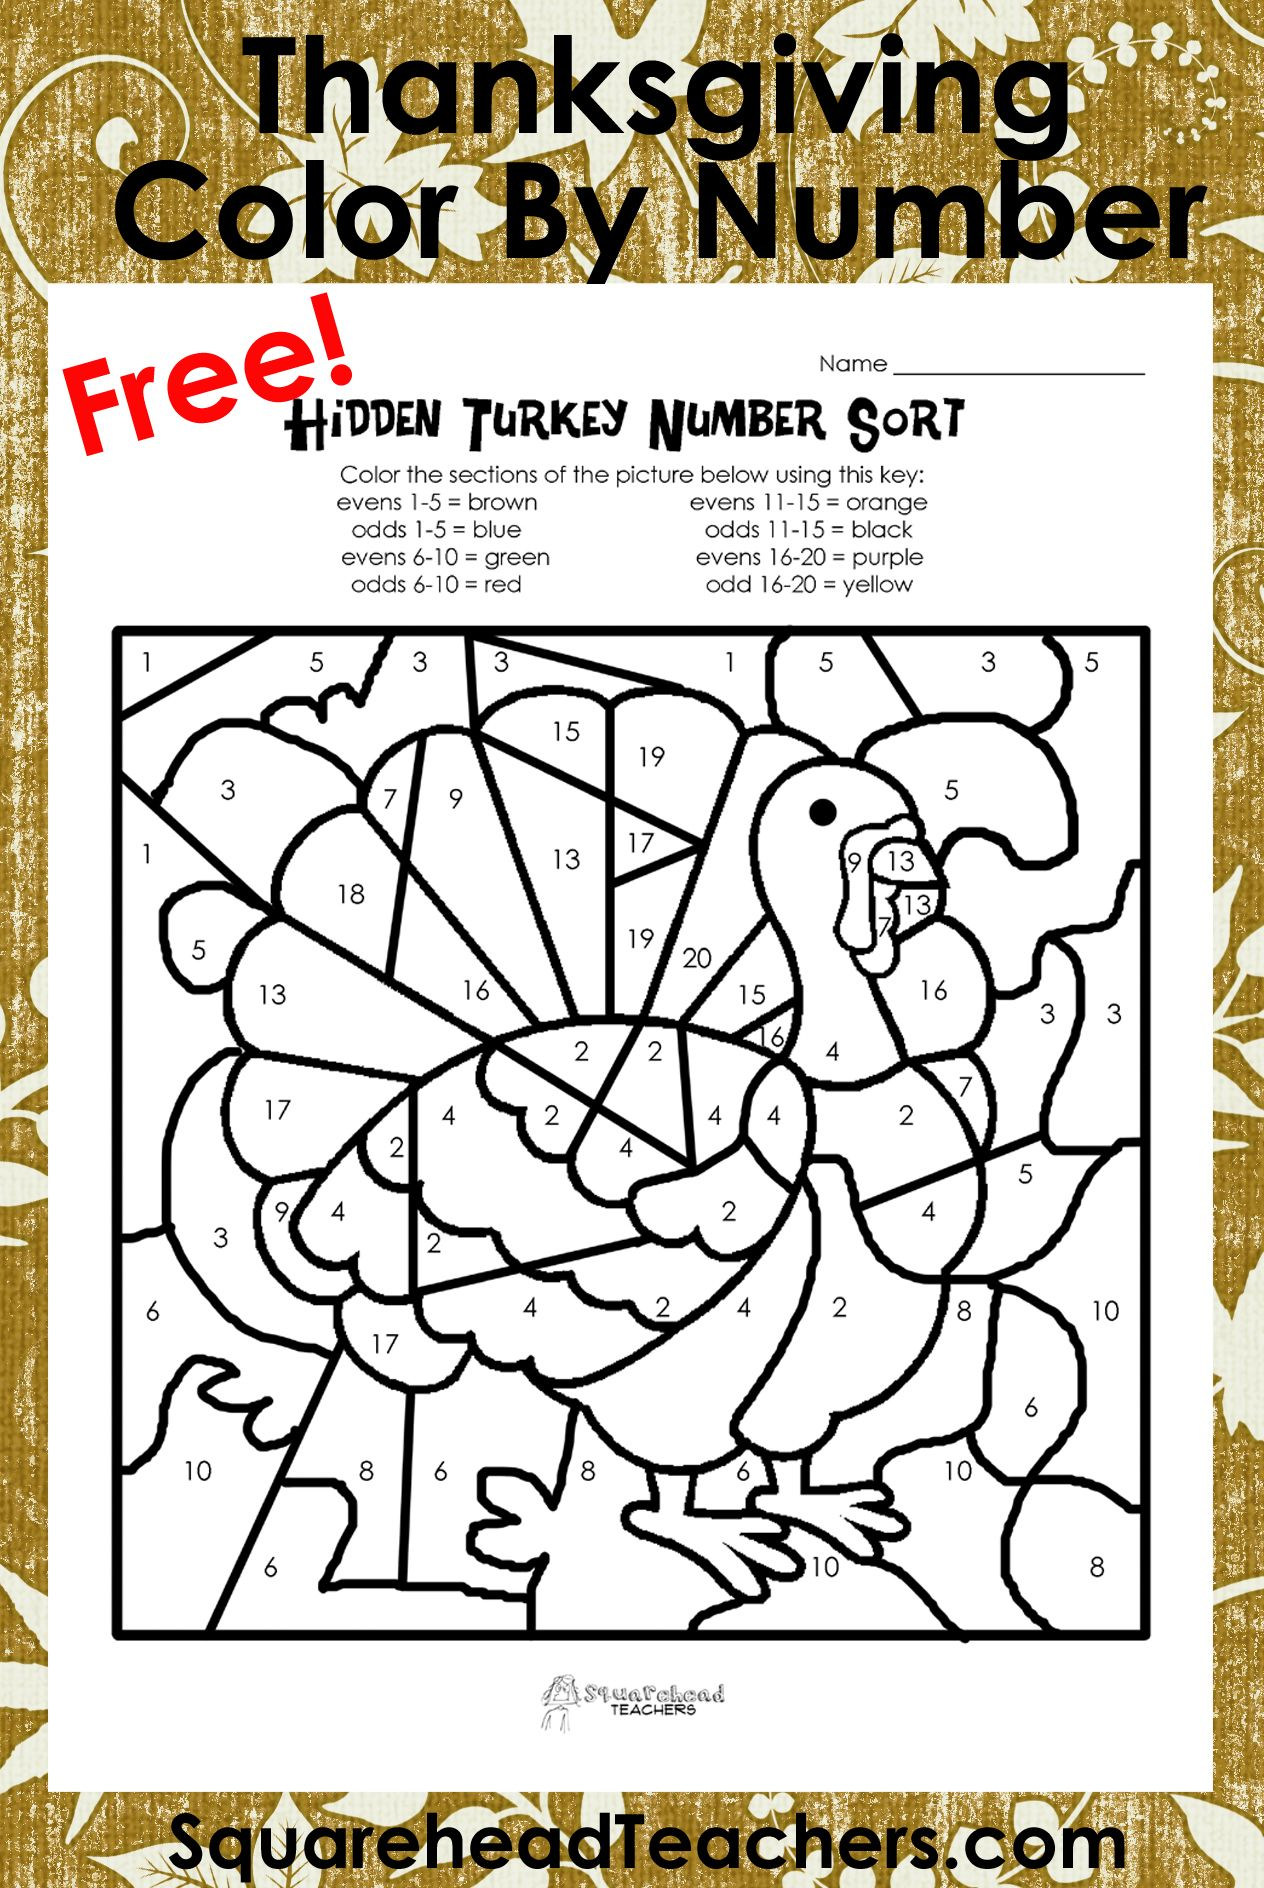 hight resolution of Thanksgiving Color By Number (odd/evens sort)   Parts of speech worksheets